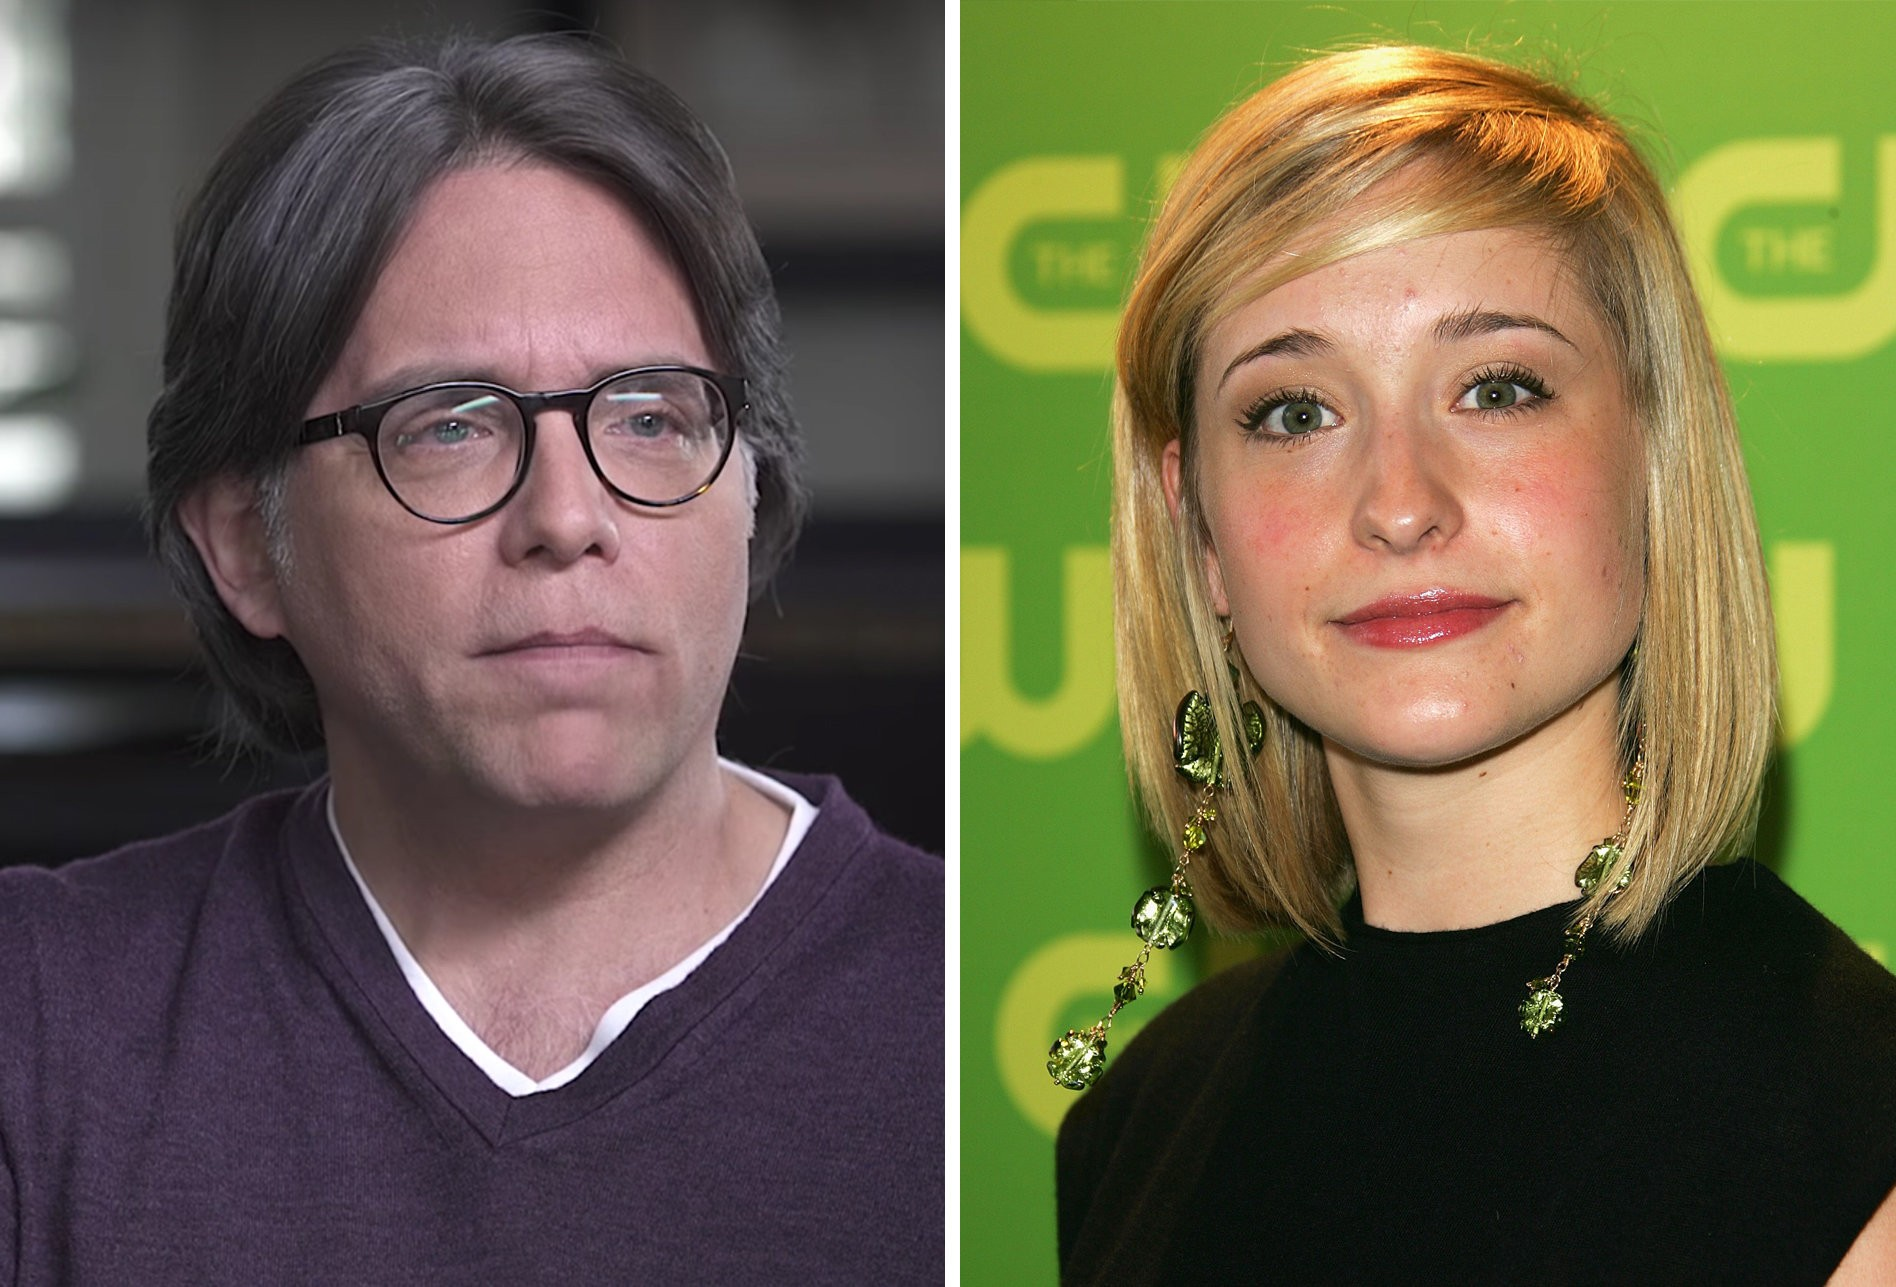 Allison Mack Nude smallville' actress facing arrest next for upstate ny 'sex